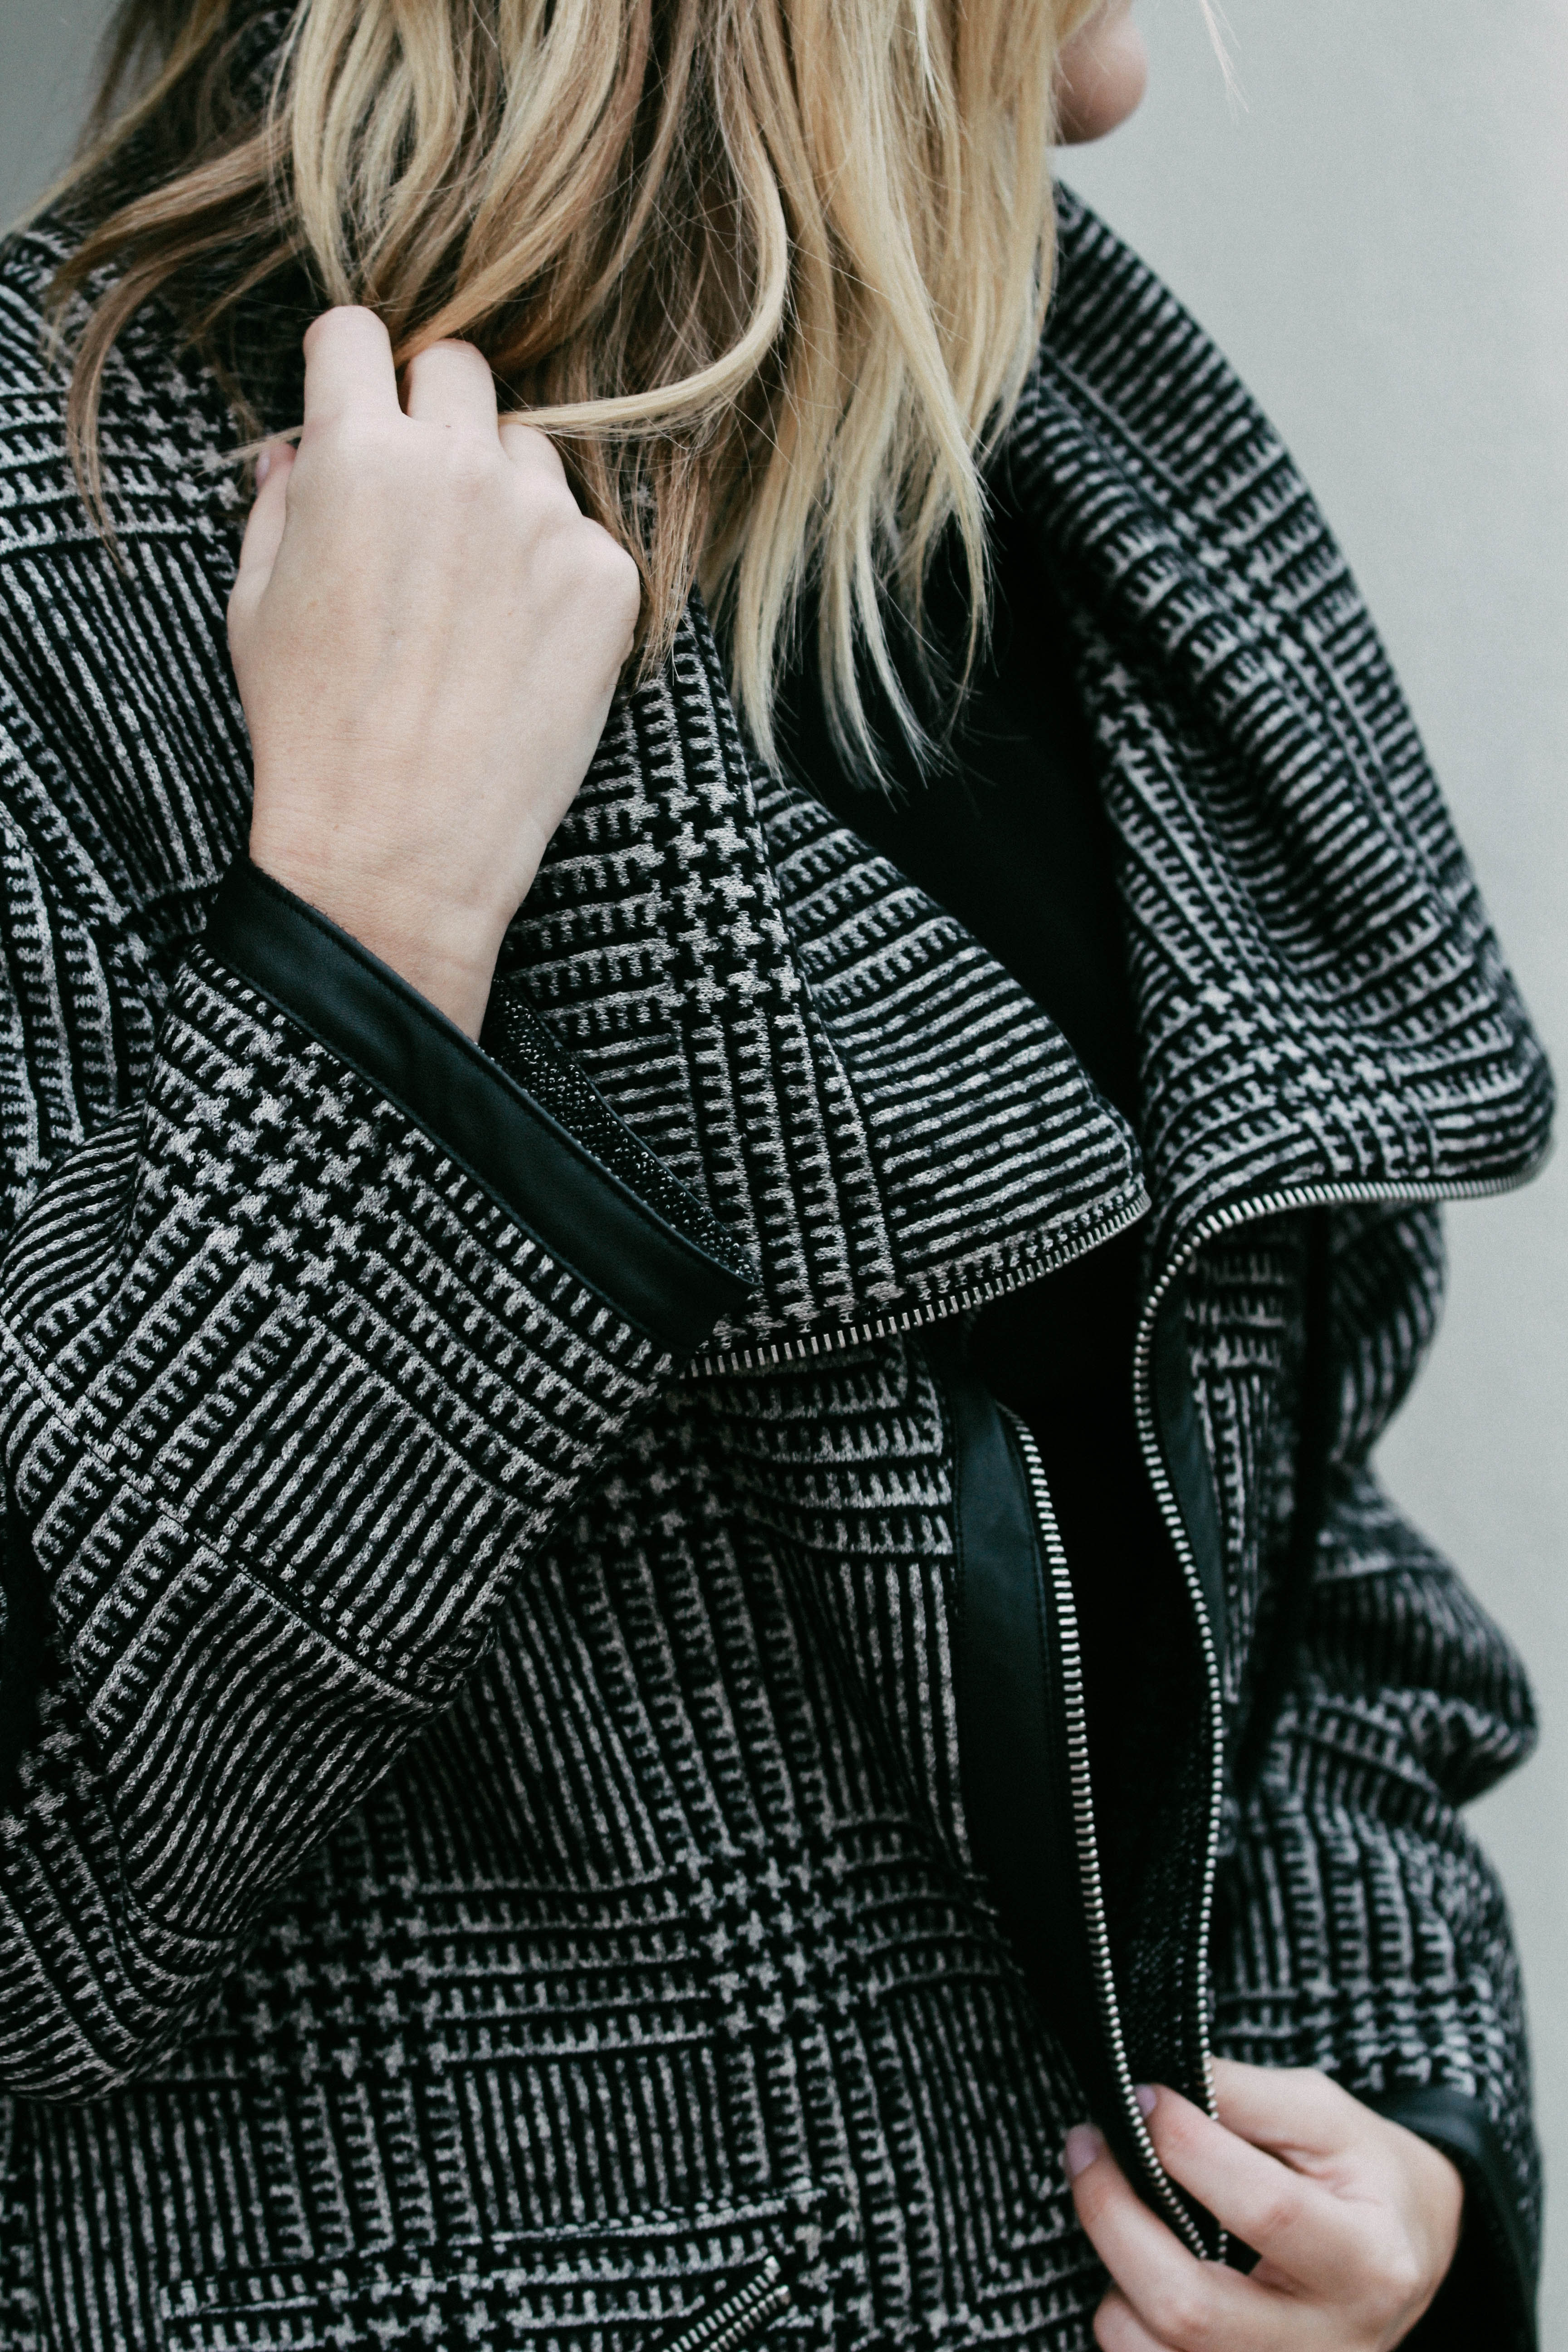 Of-Mercer-Sheath-Coat-Georgetown-District-Sparkle-Meaghan-Moynahan